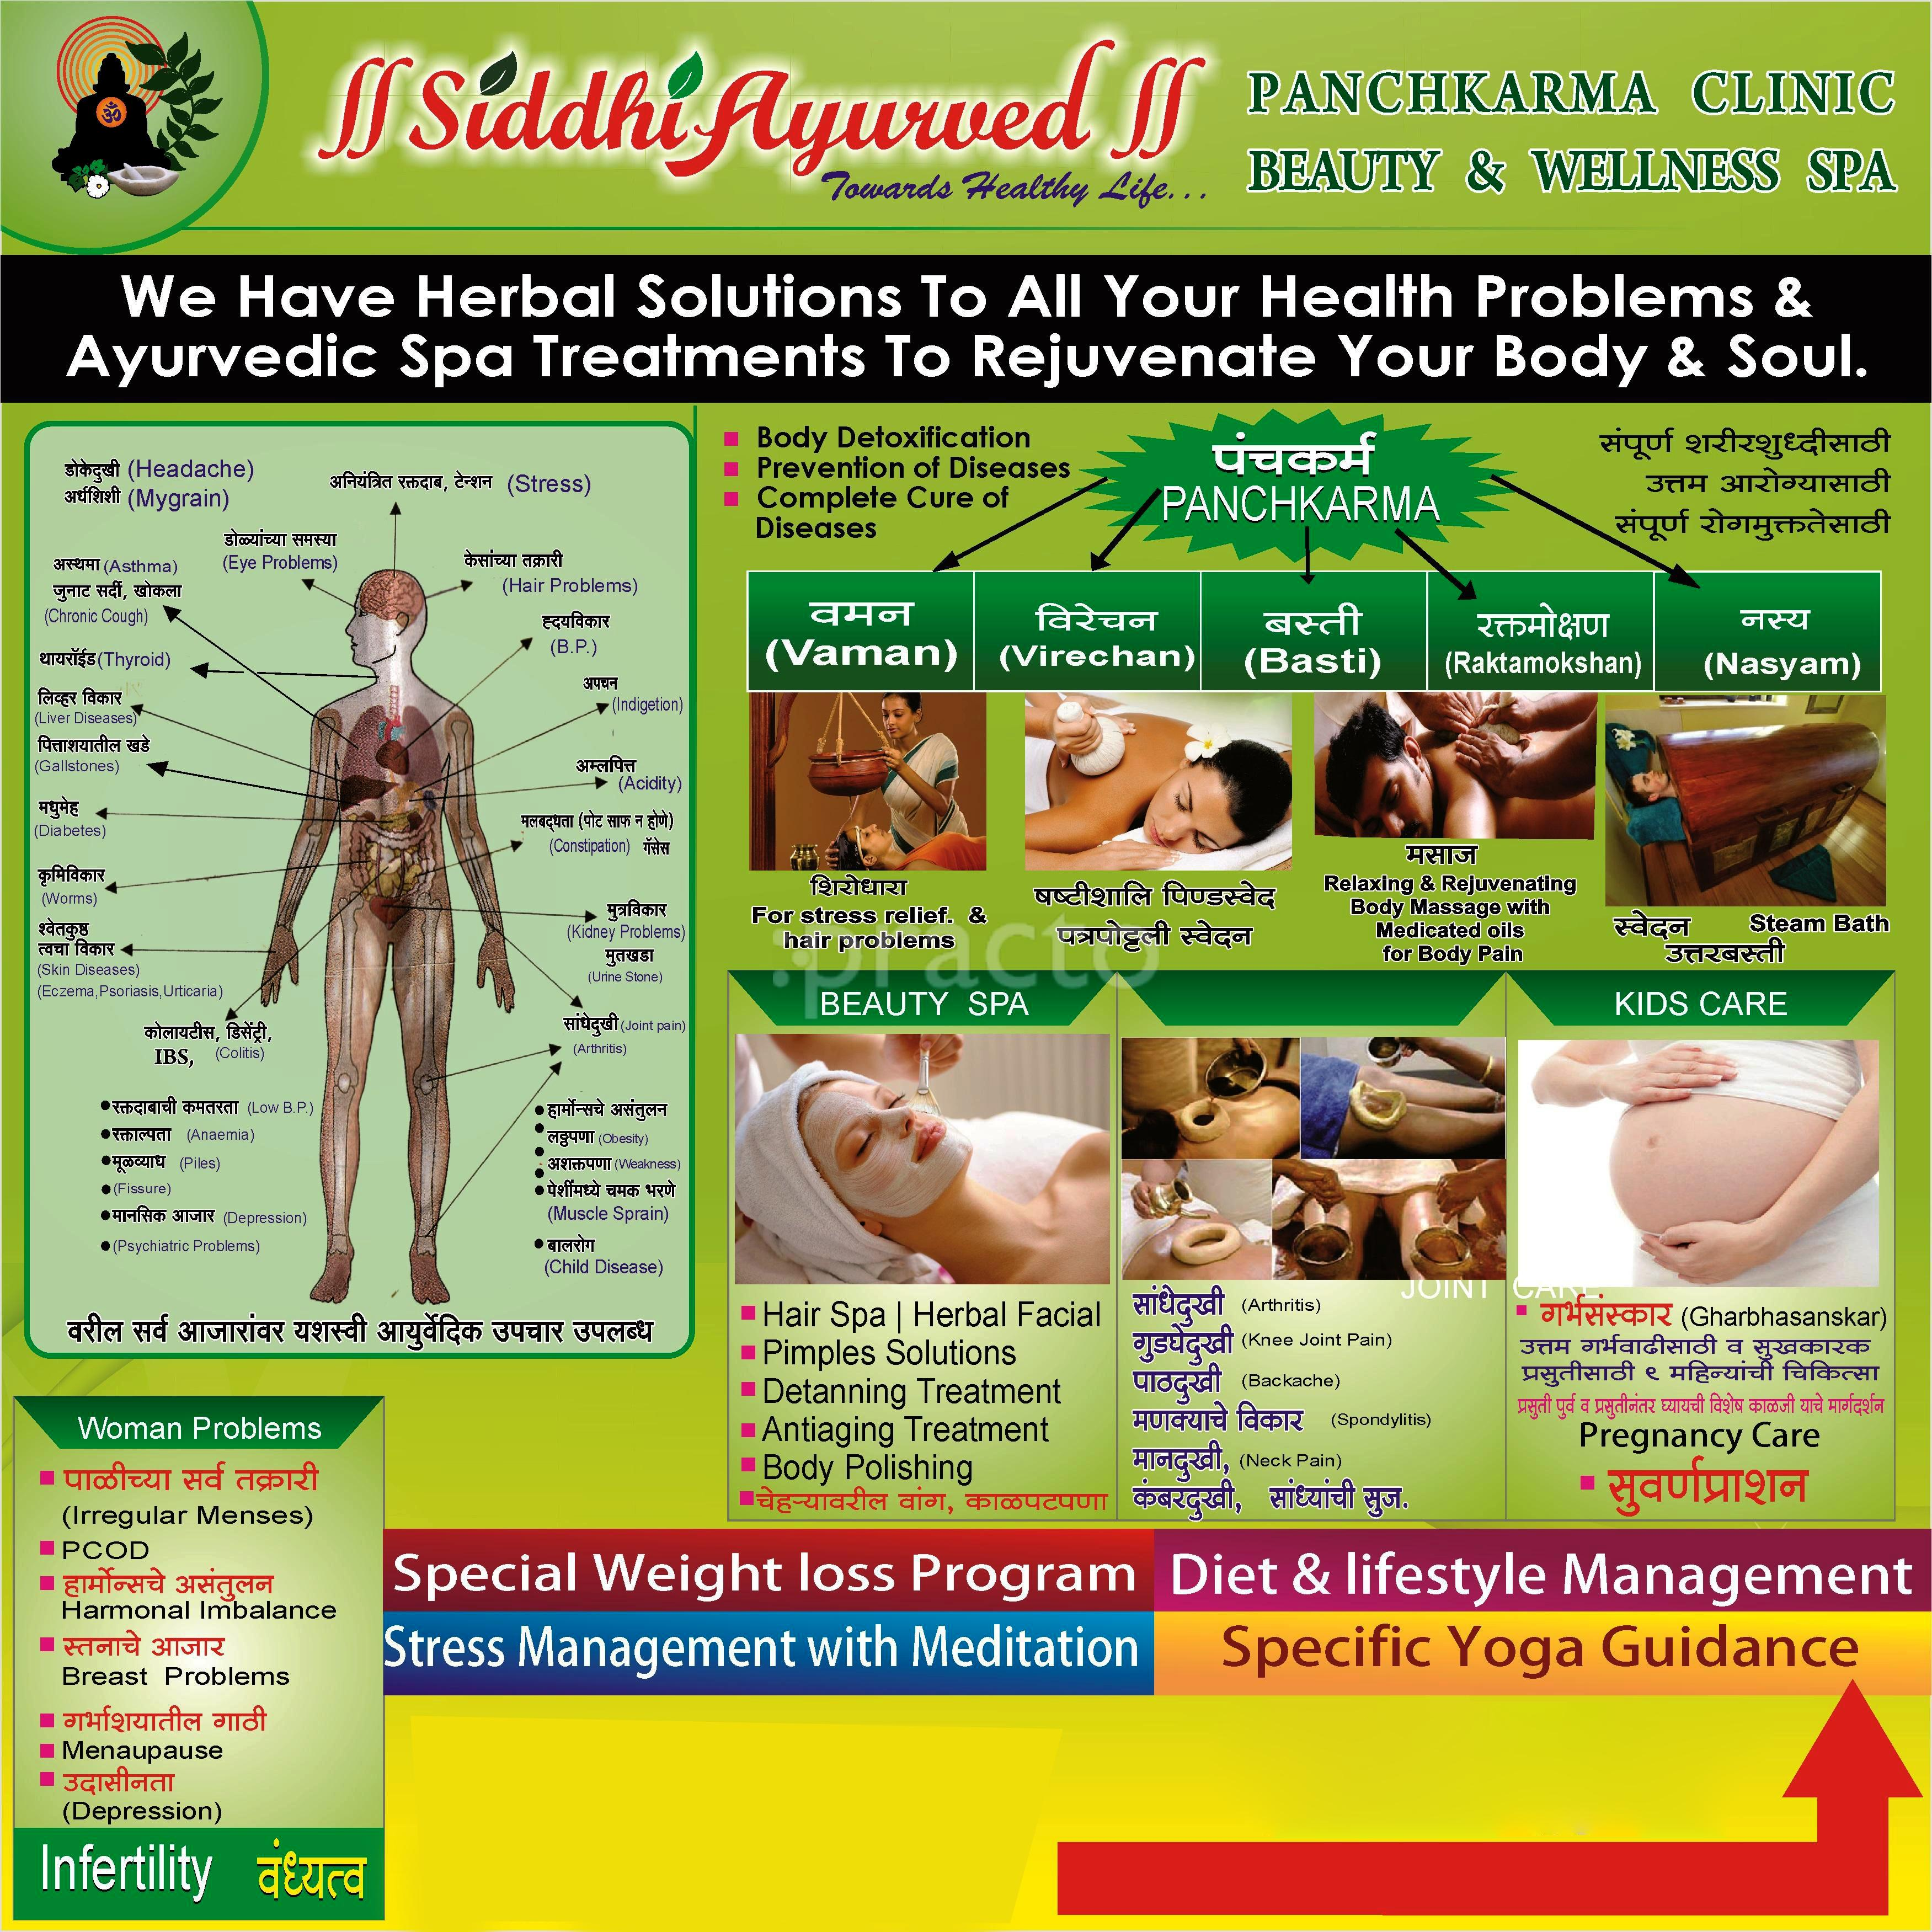 Best Clinics in Wakad, Pune - Book Appointment, View Reviews